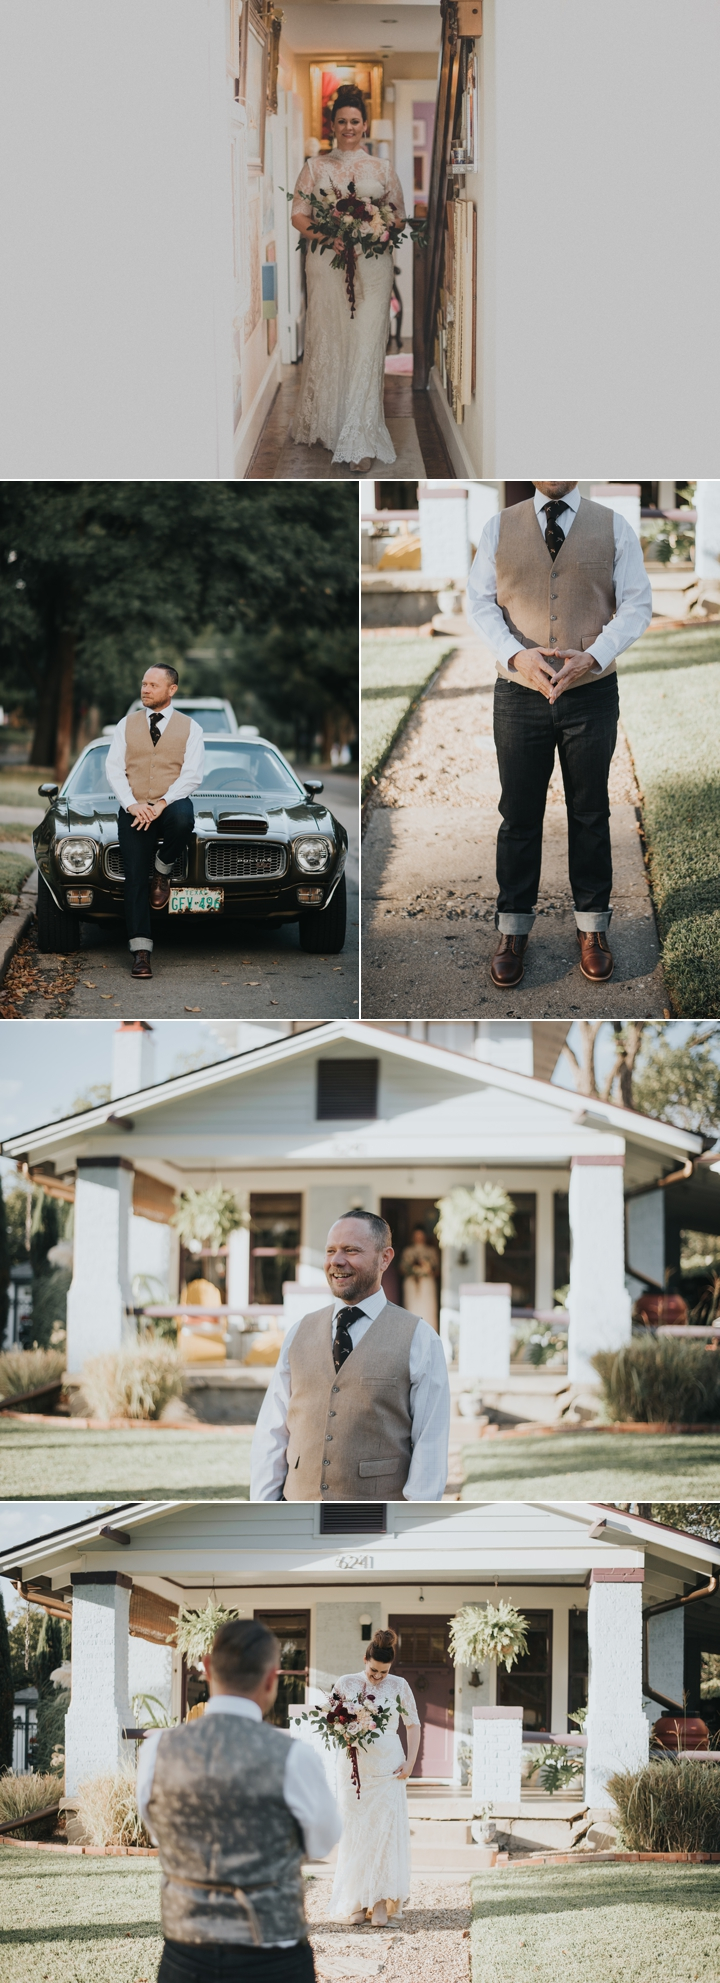 dallas-wedding-photographers-jp 7.jpg